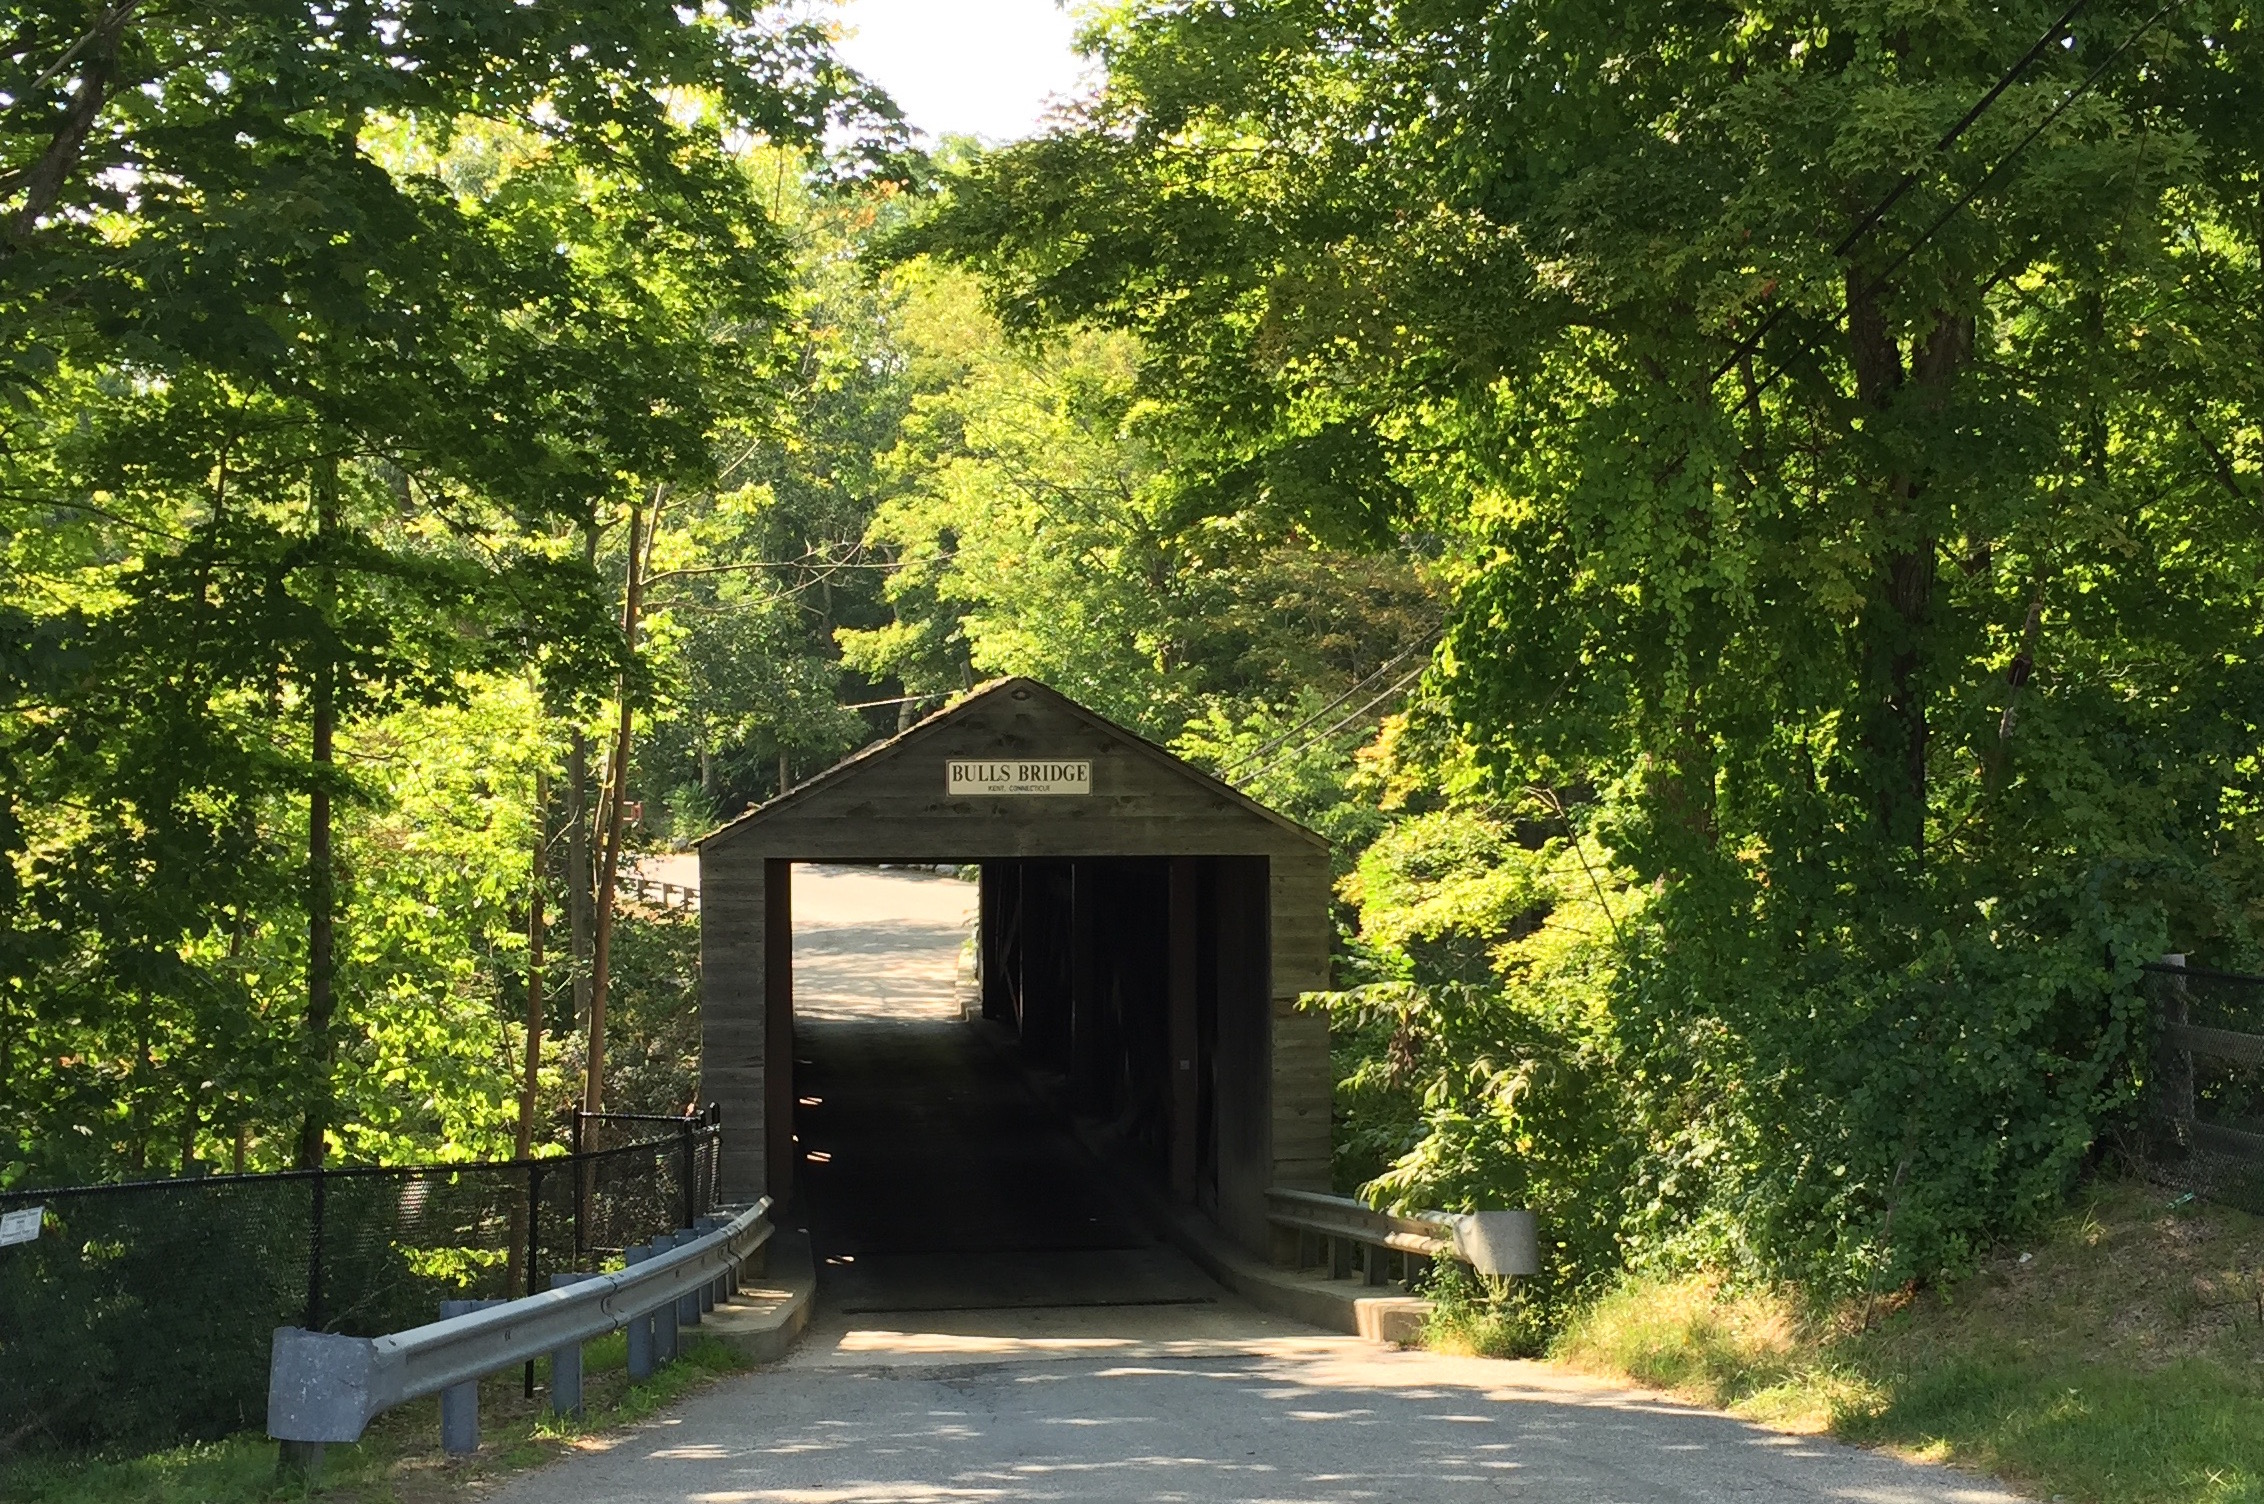 The Bulls Bridge area in Northwest Connecticut is one of my favorite spots for enjoying the outdoors (or for going Forest Bathing, if I want to sound trendy).